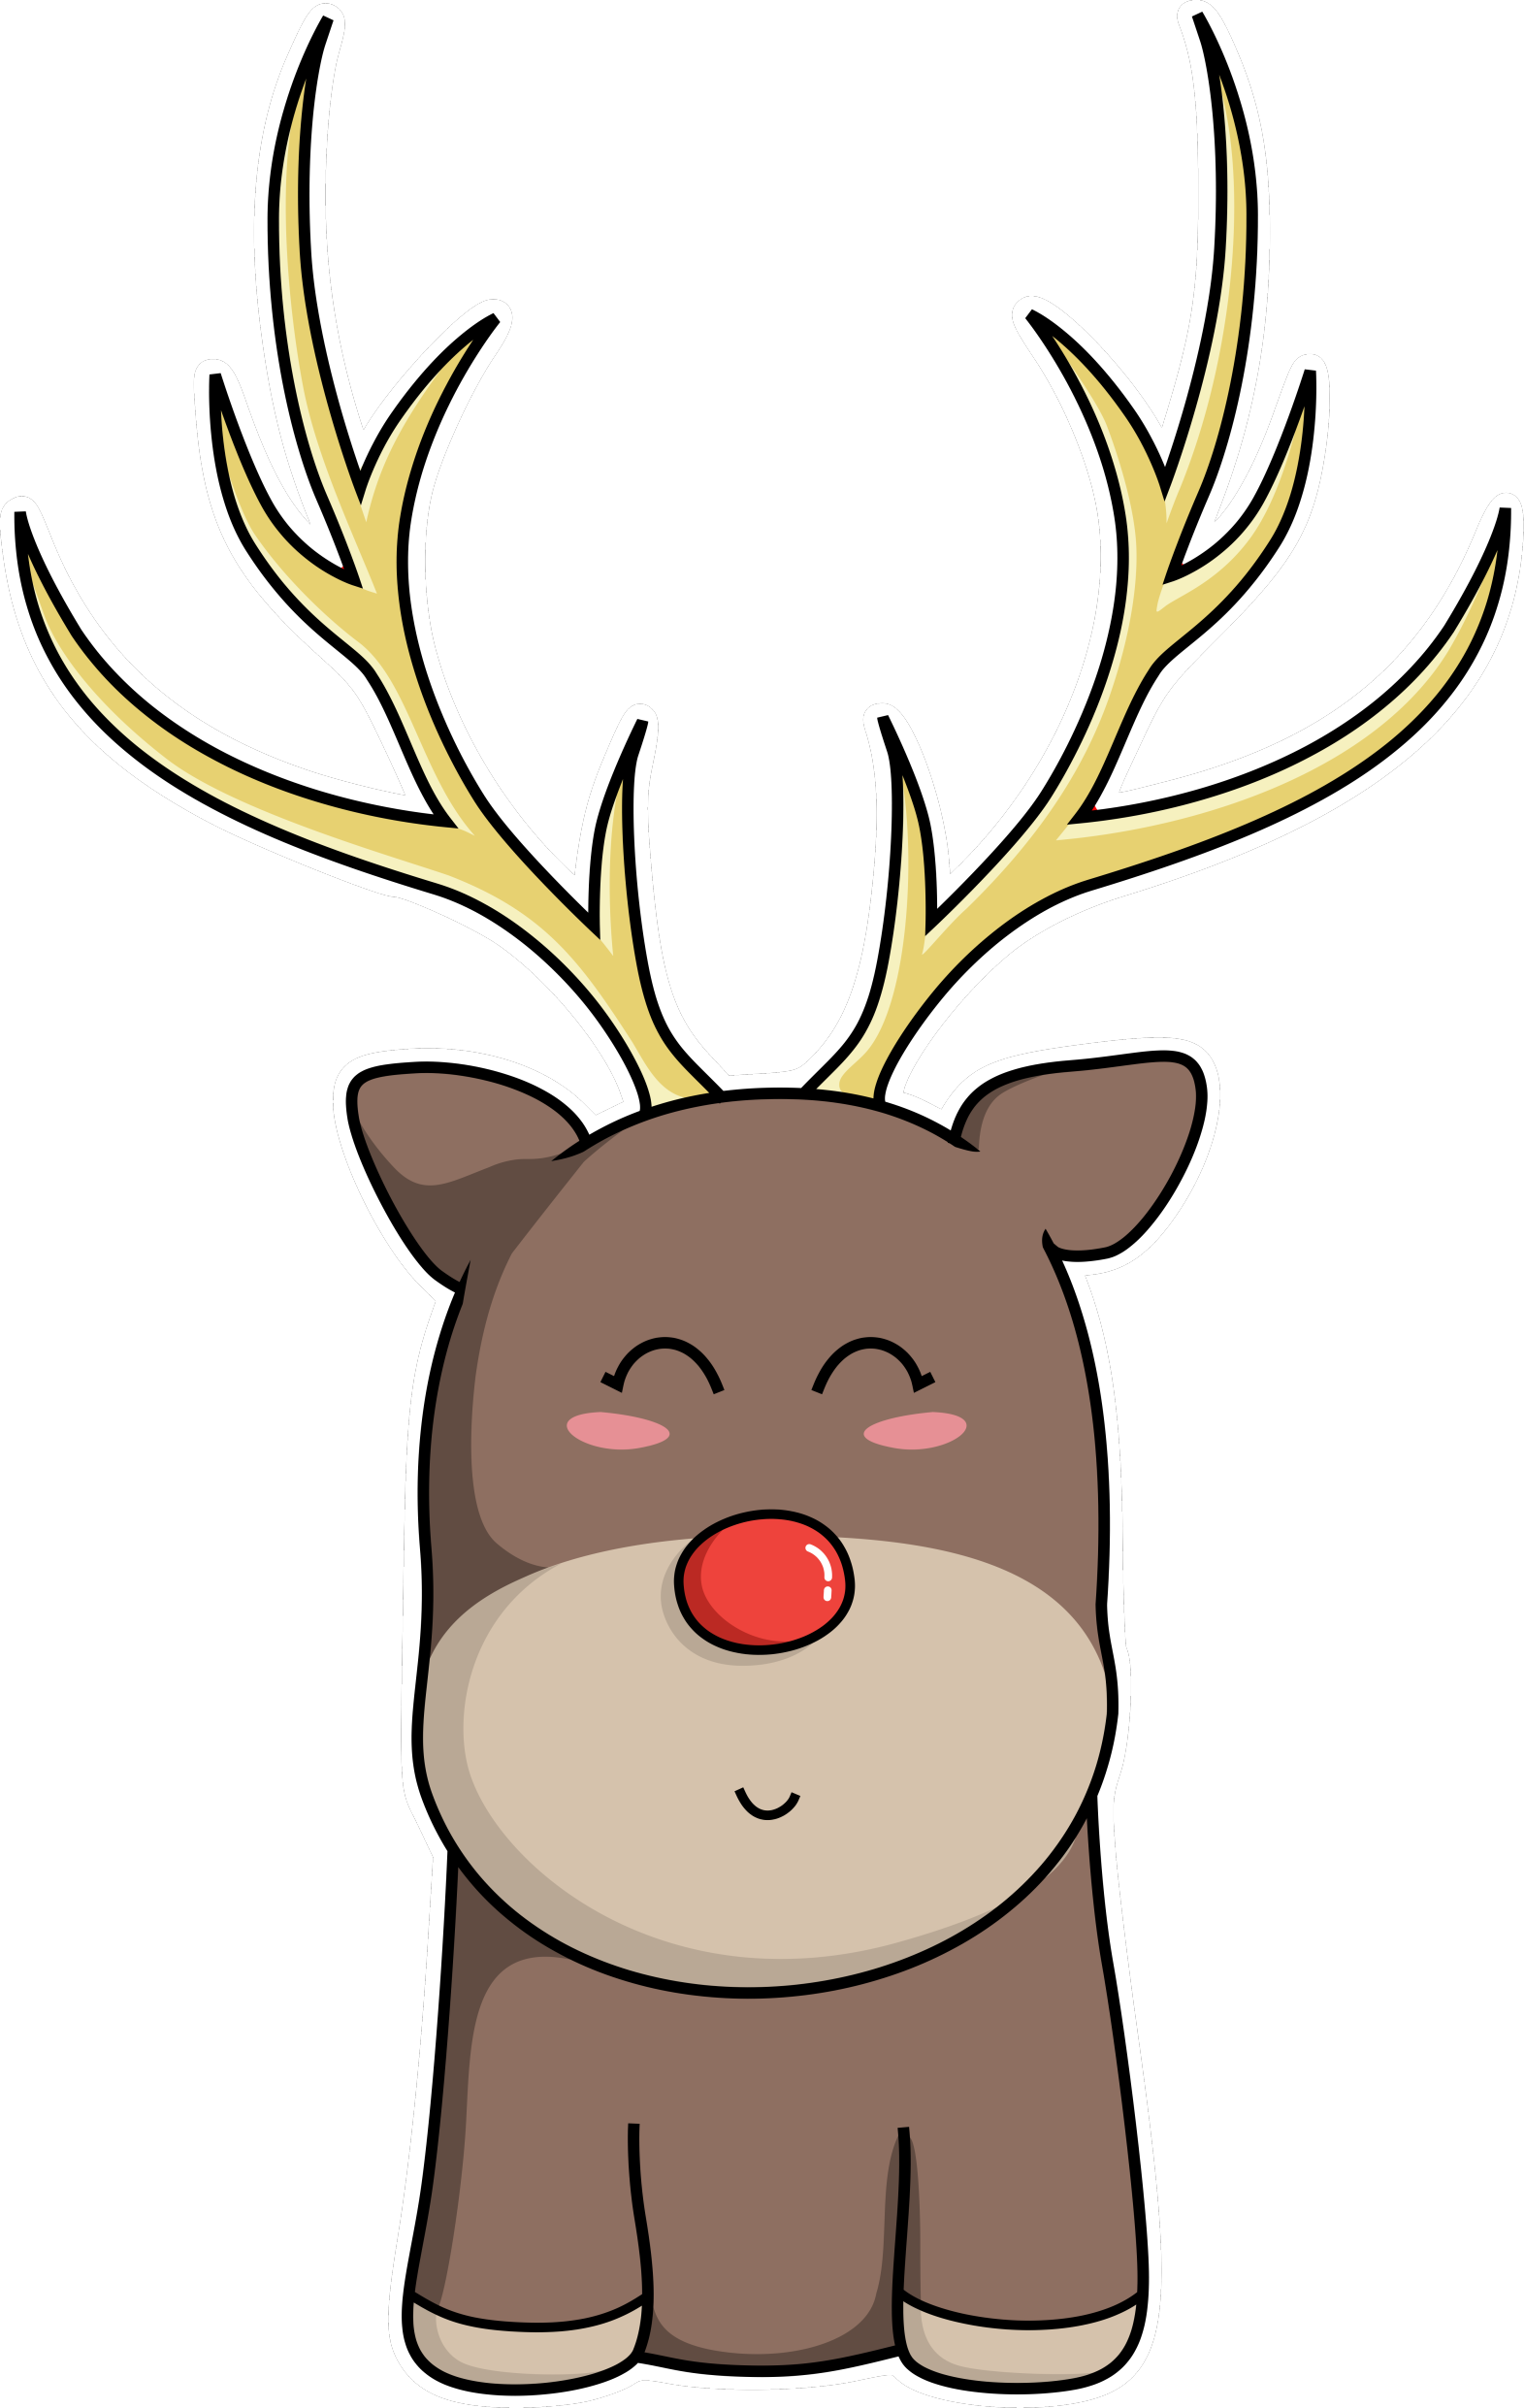 Raindeer drawing kawaii. Christmas www imagenesmi com